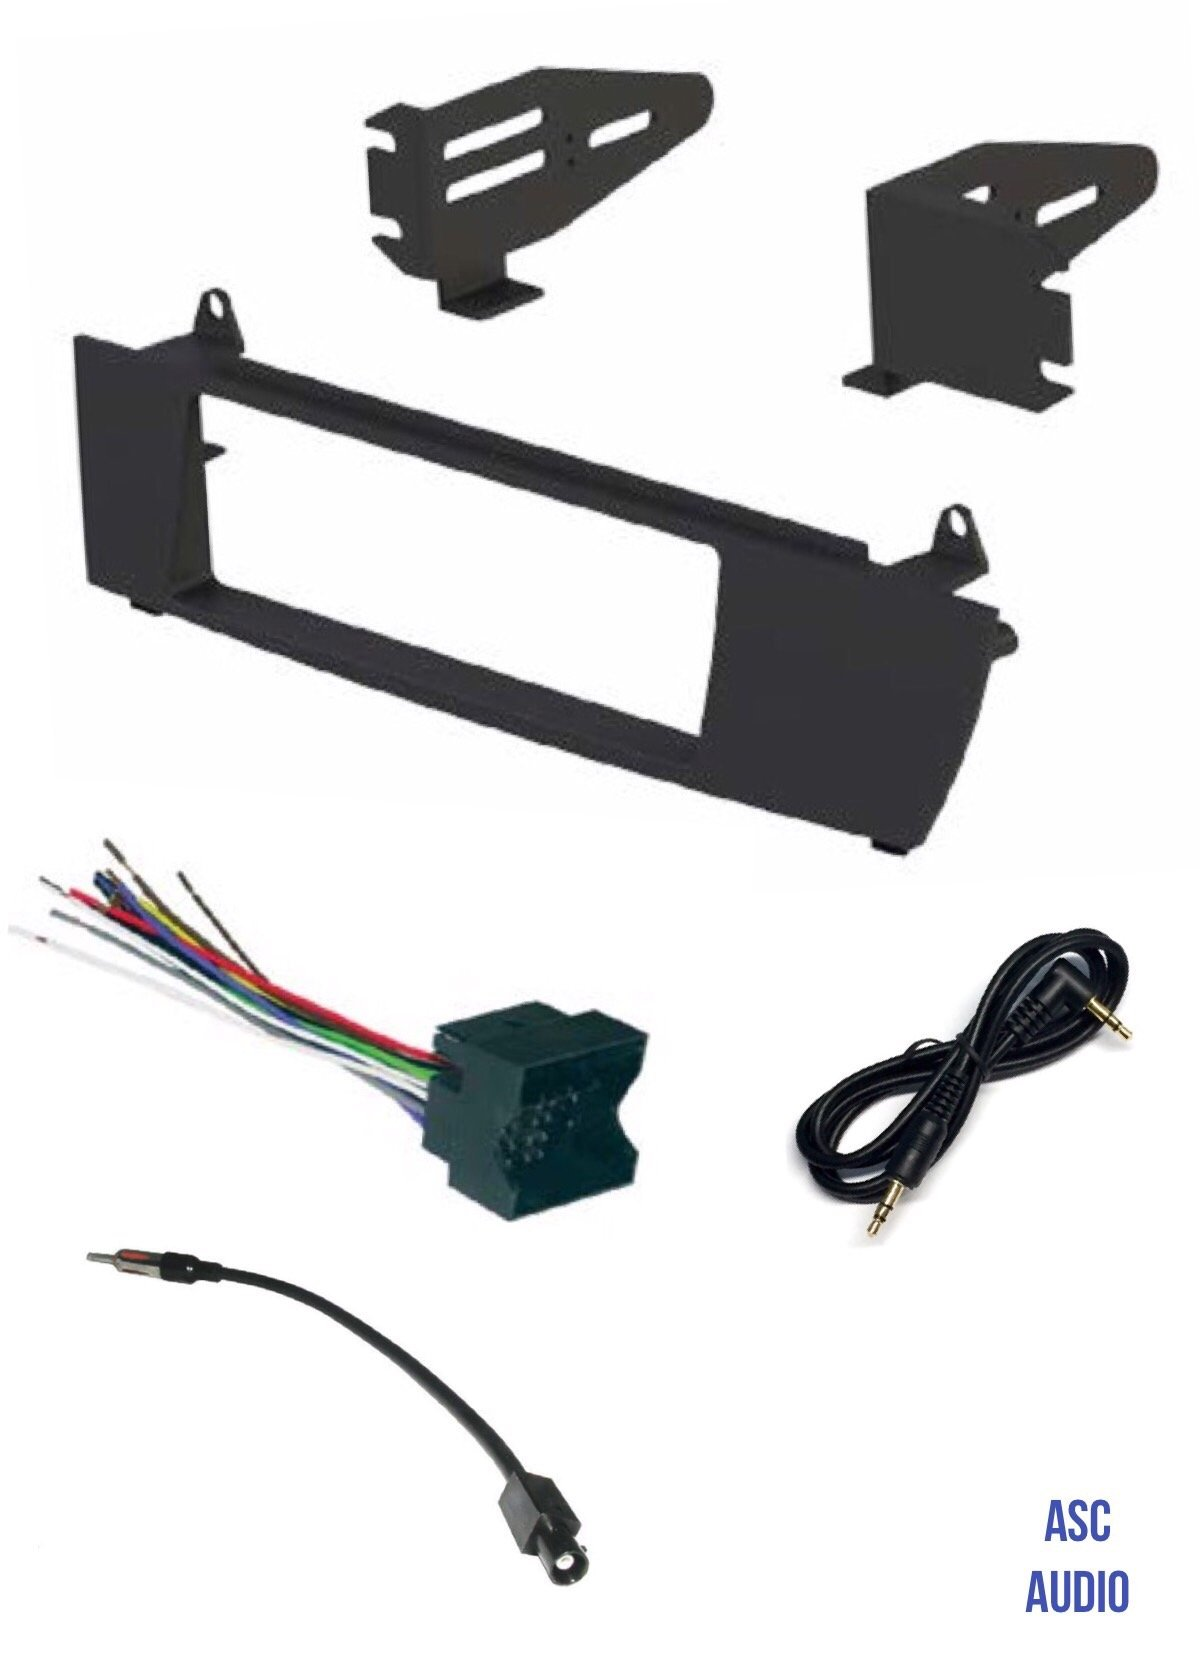 ASC Car Stereo Install Dash Kit, Wire Harness, and Antenna Adapter to Install and Aftermarket Single Din Radio for 2004 2005 2006 2007 2008 2009 2010 BMW X3